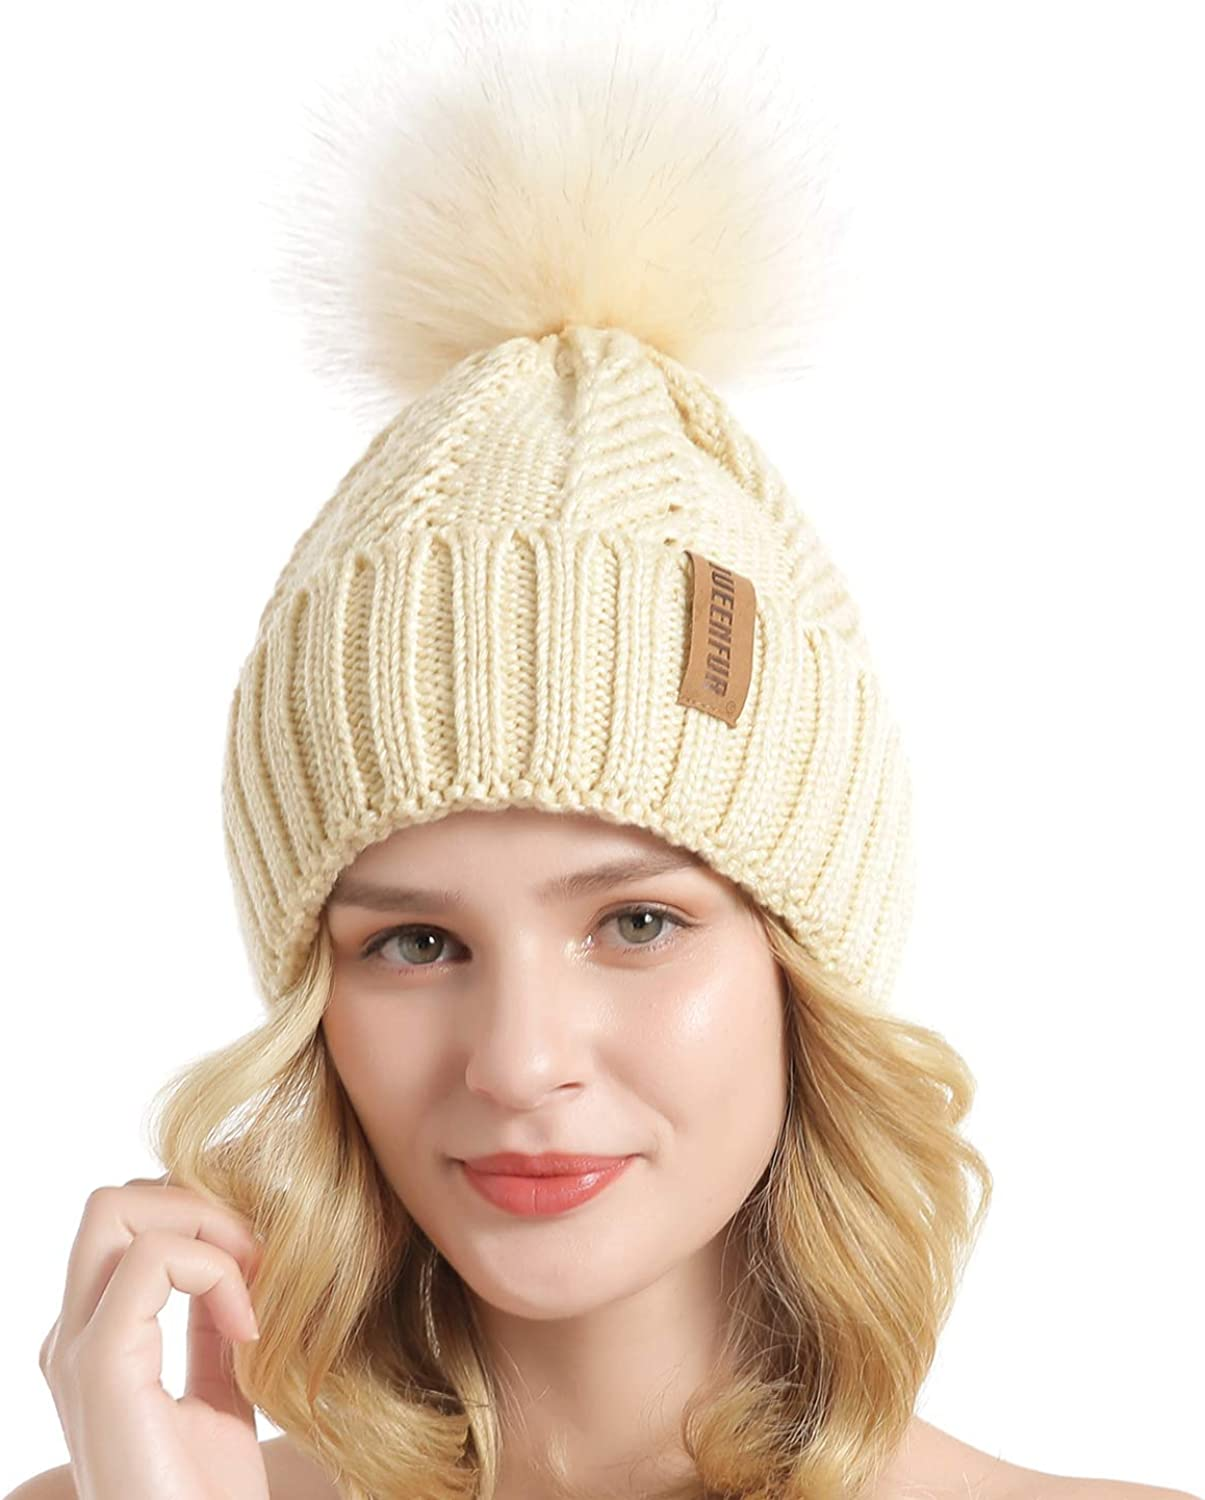 Winter Hats for Women Pompom Fur Hat Knitted Beanies Thicker Hat with Flaps Cap Scarf